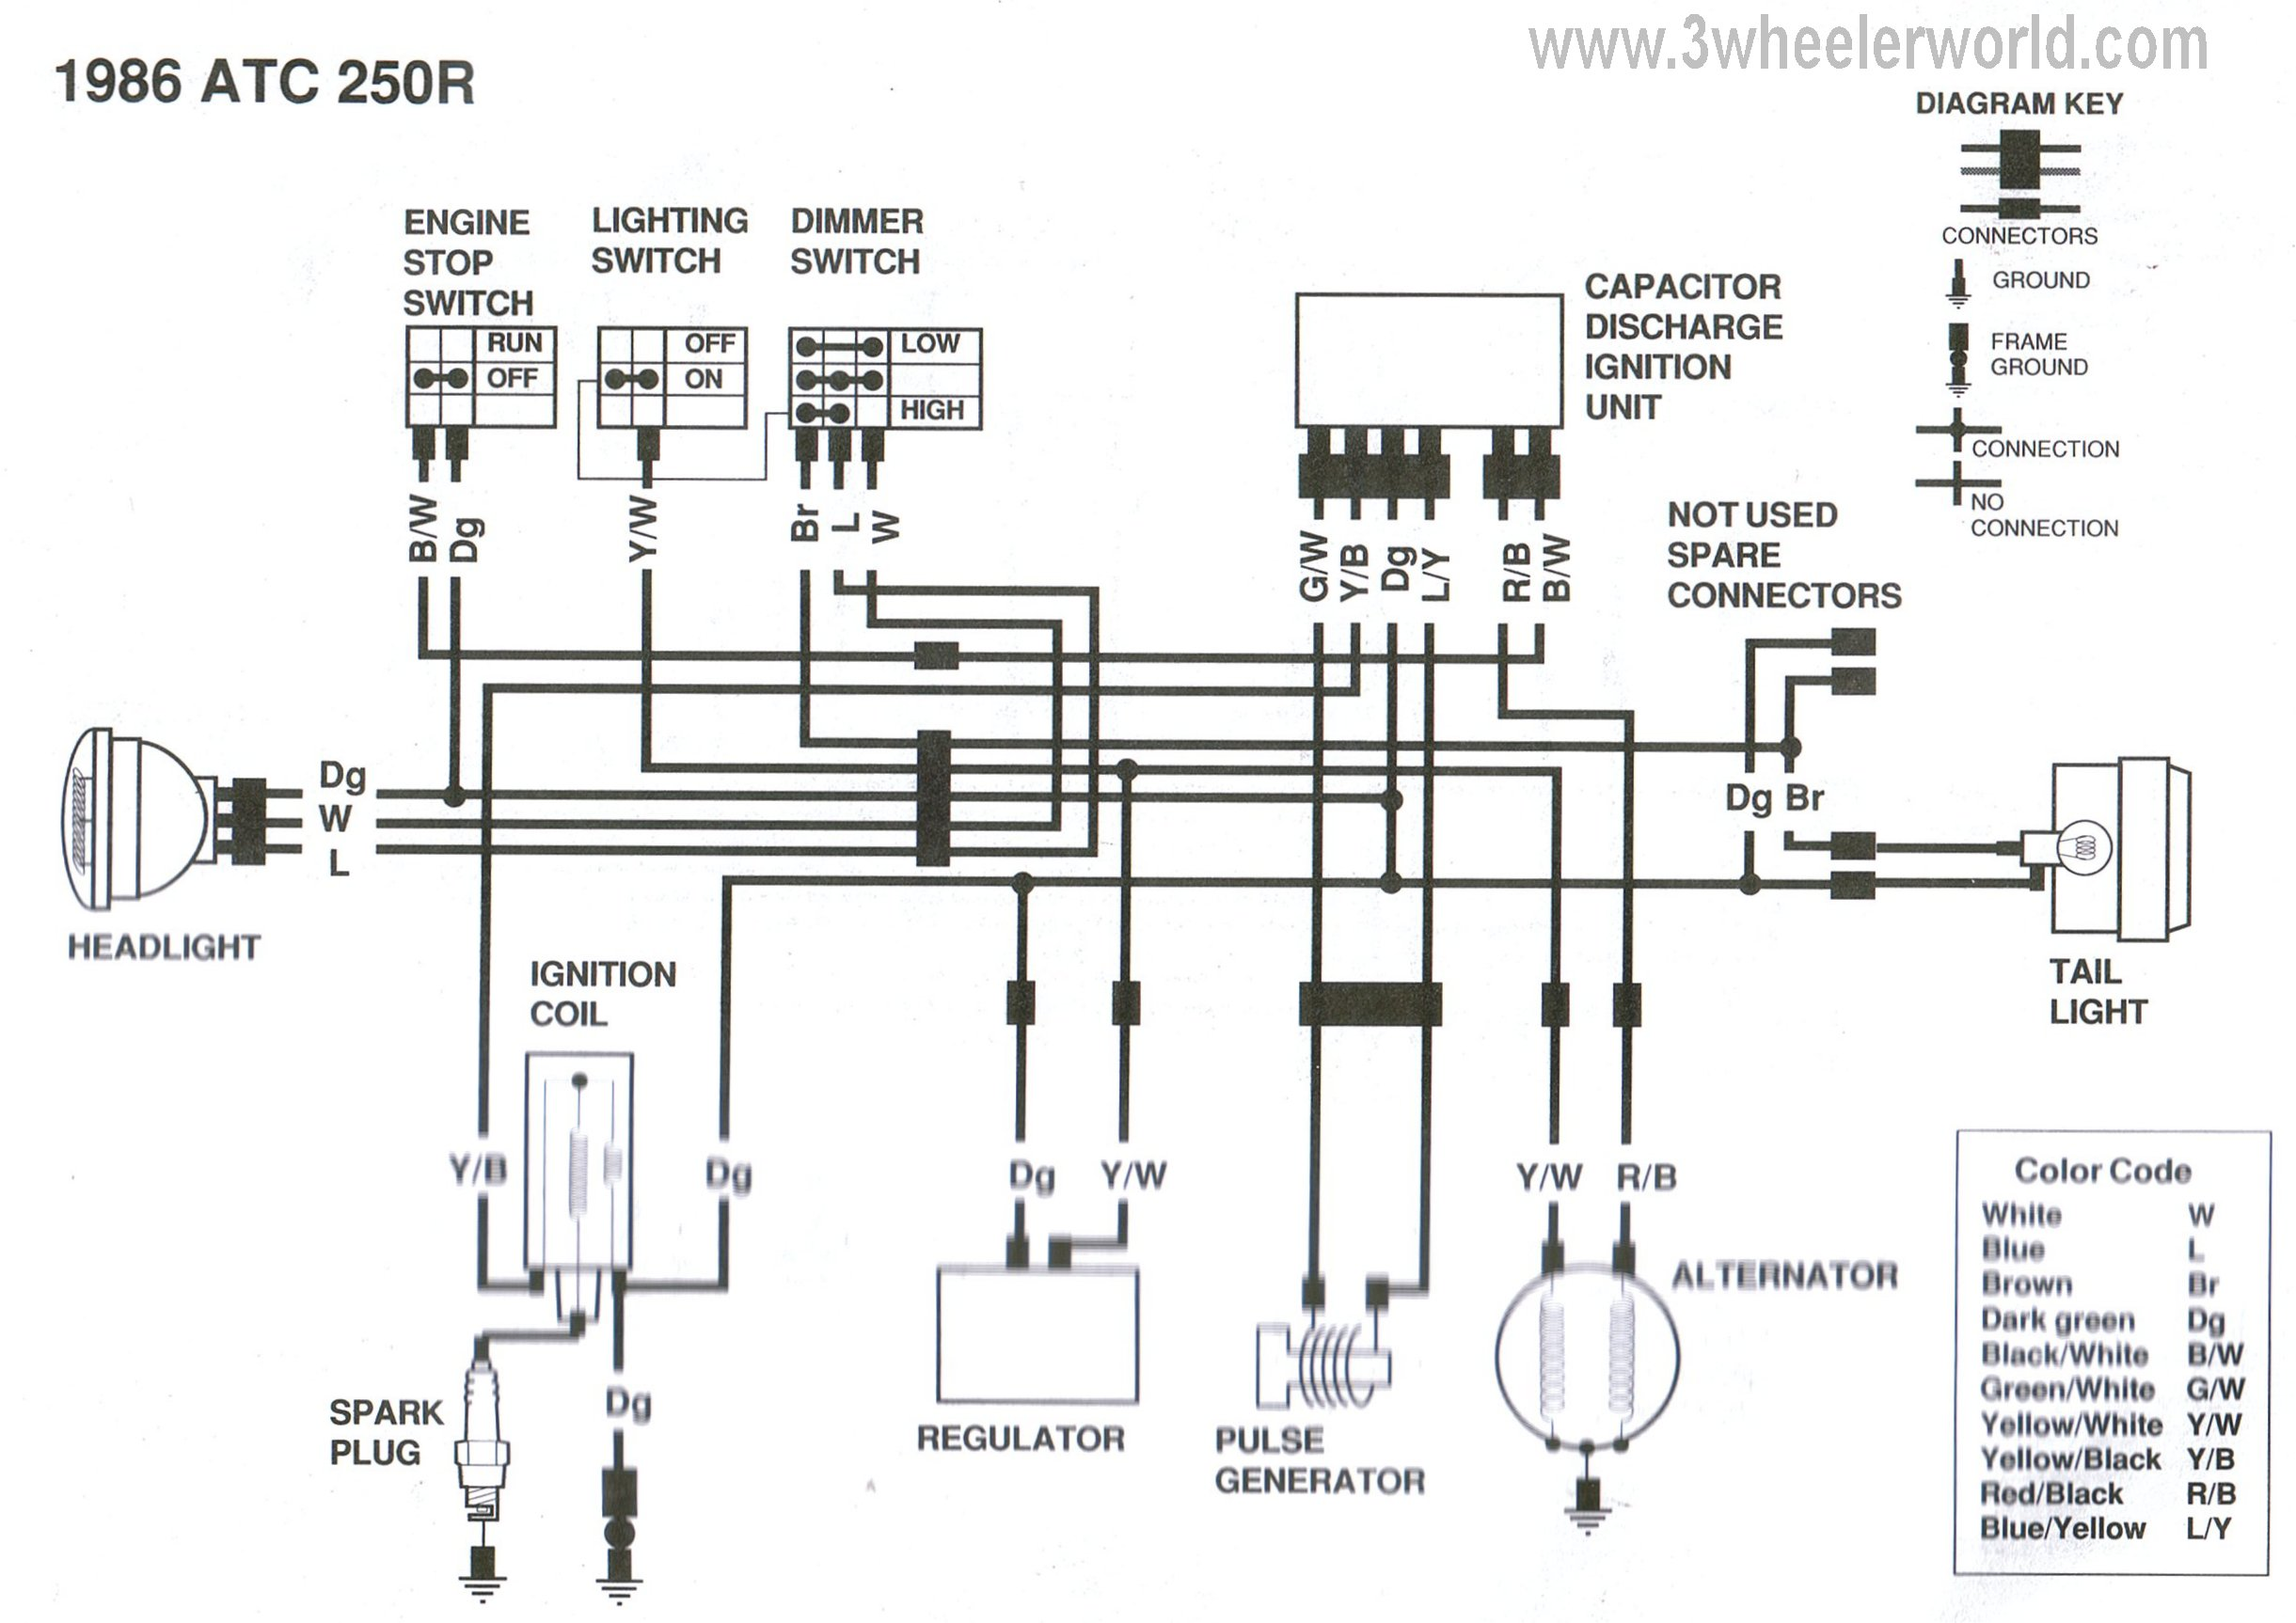 WiringHonda on 2000 kia sportage parts diagram